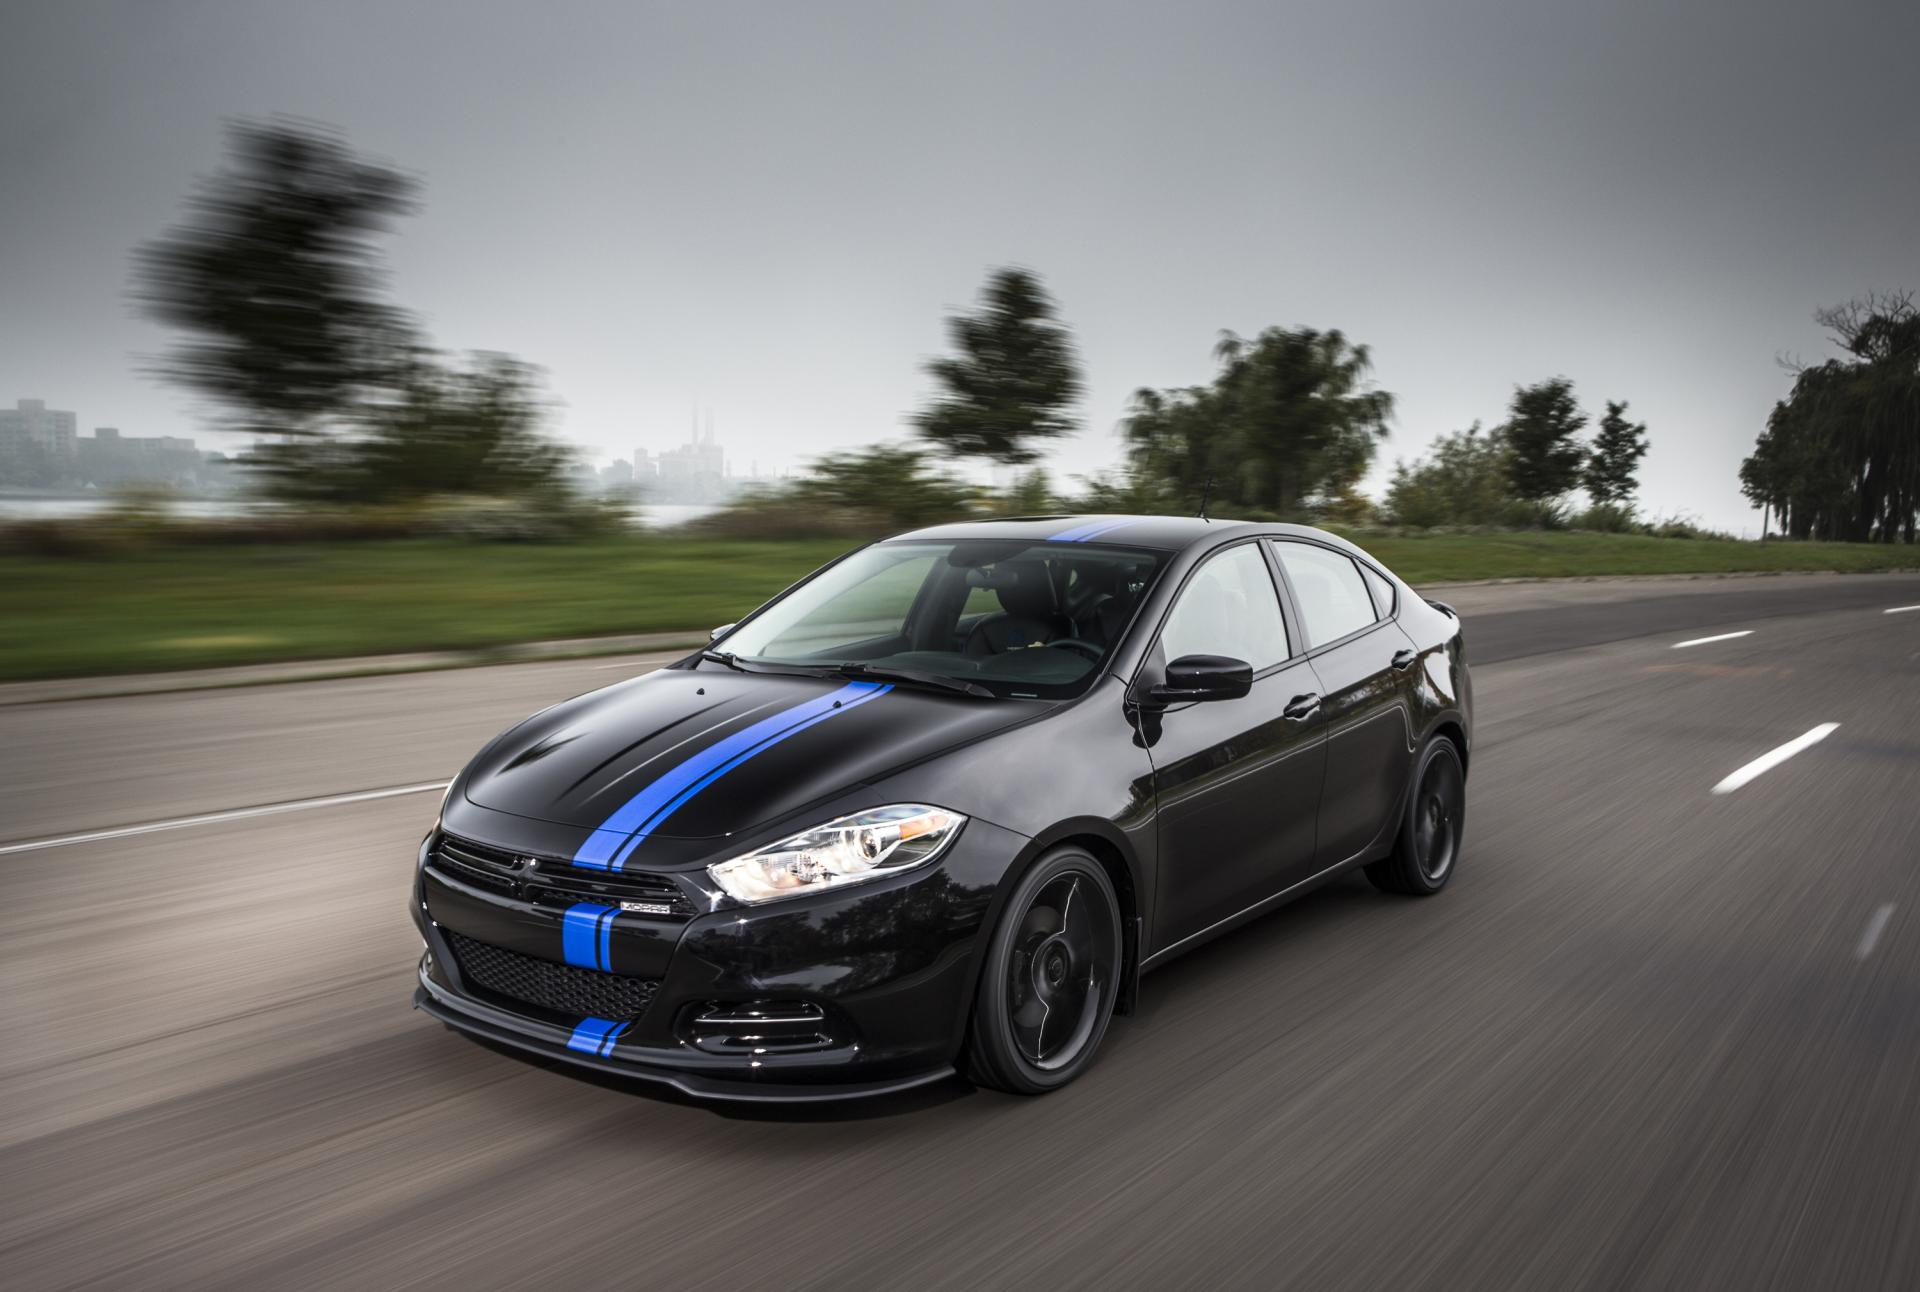 2013 Dodge Dart Mopar News and Information | conceptcarz.com